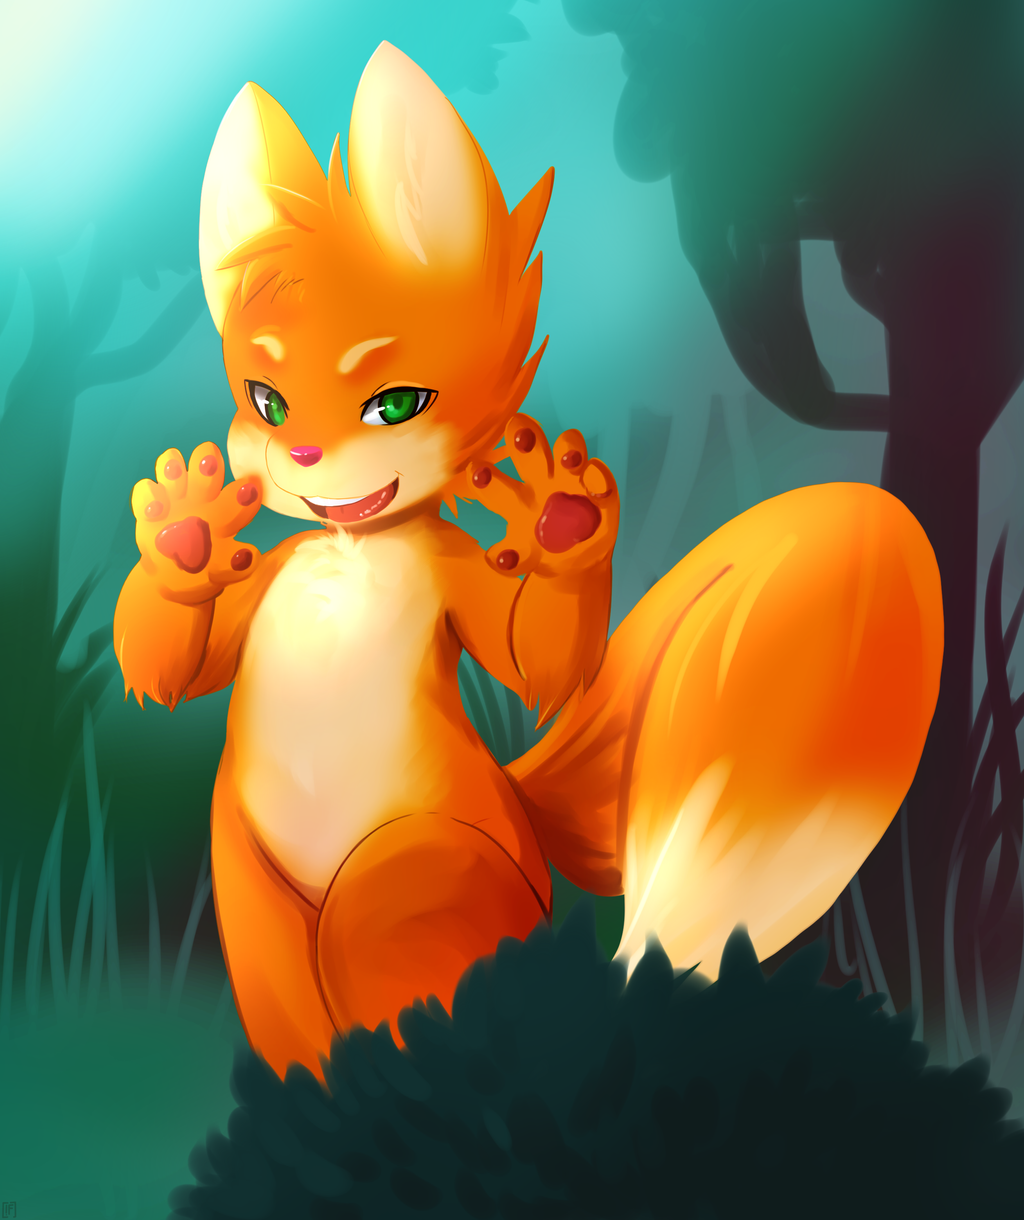 BOO sayz the fox by phation